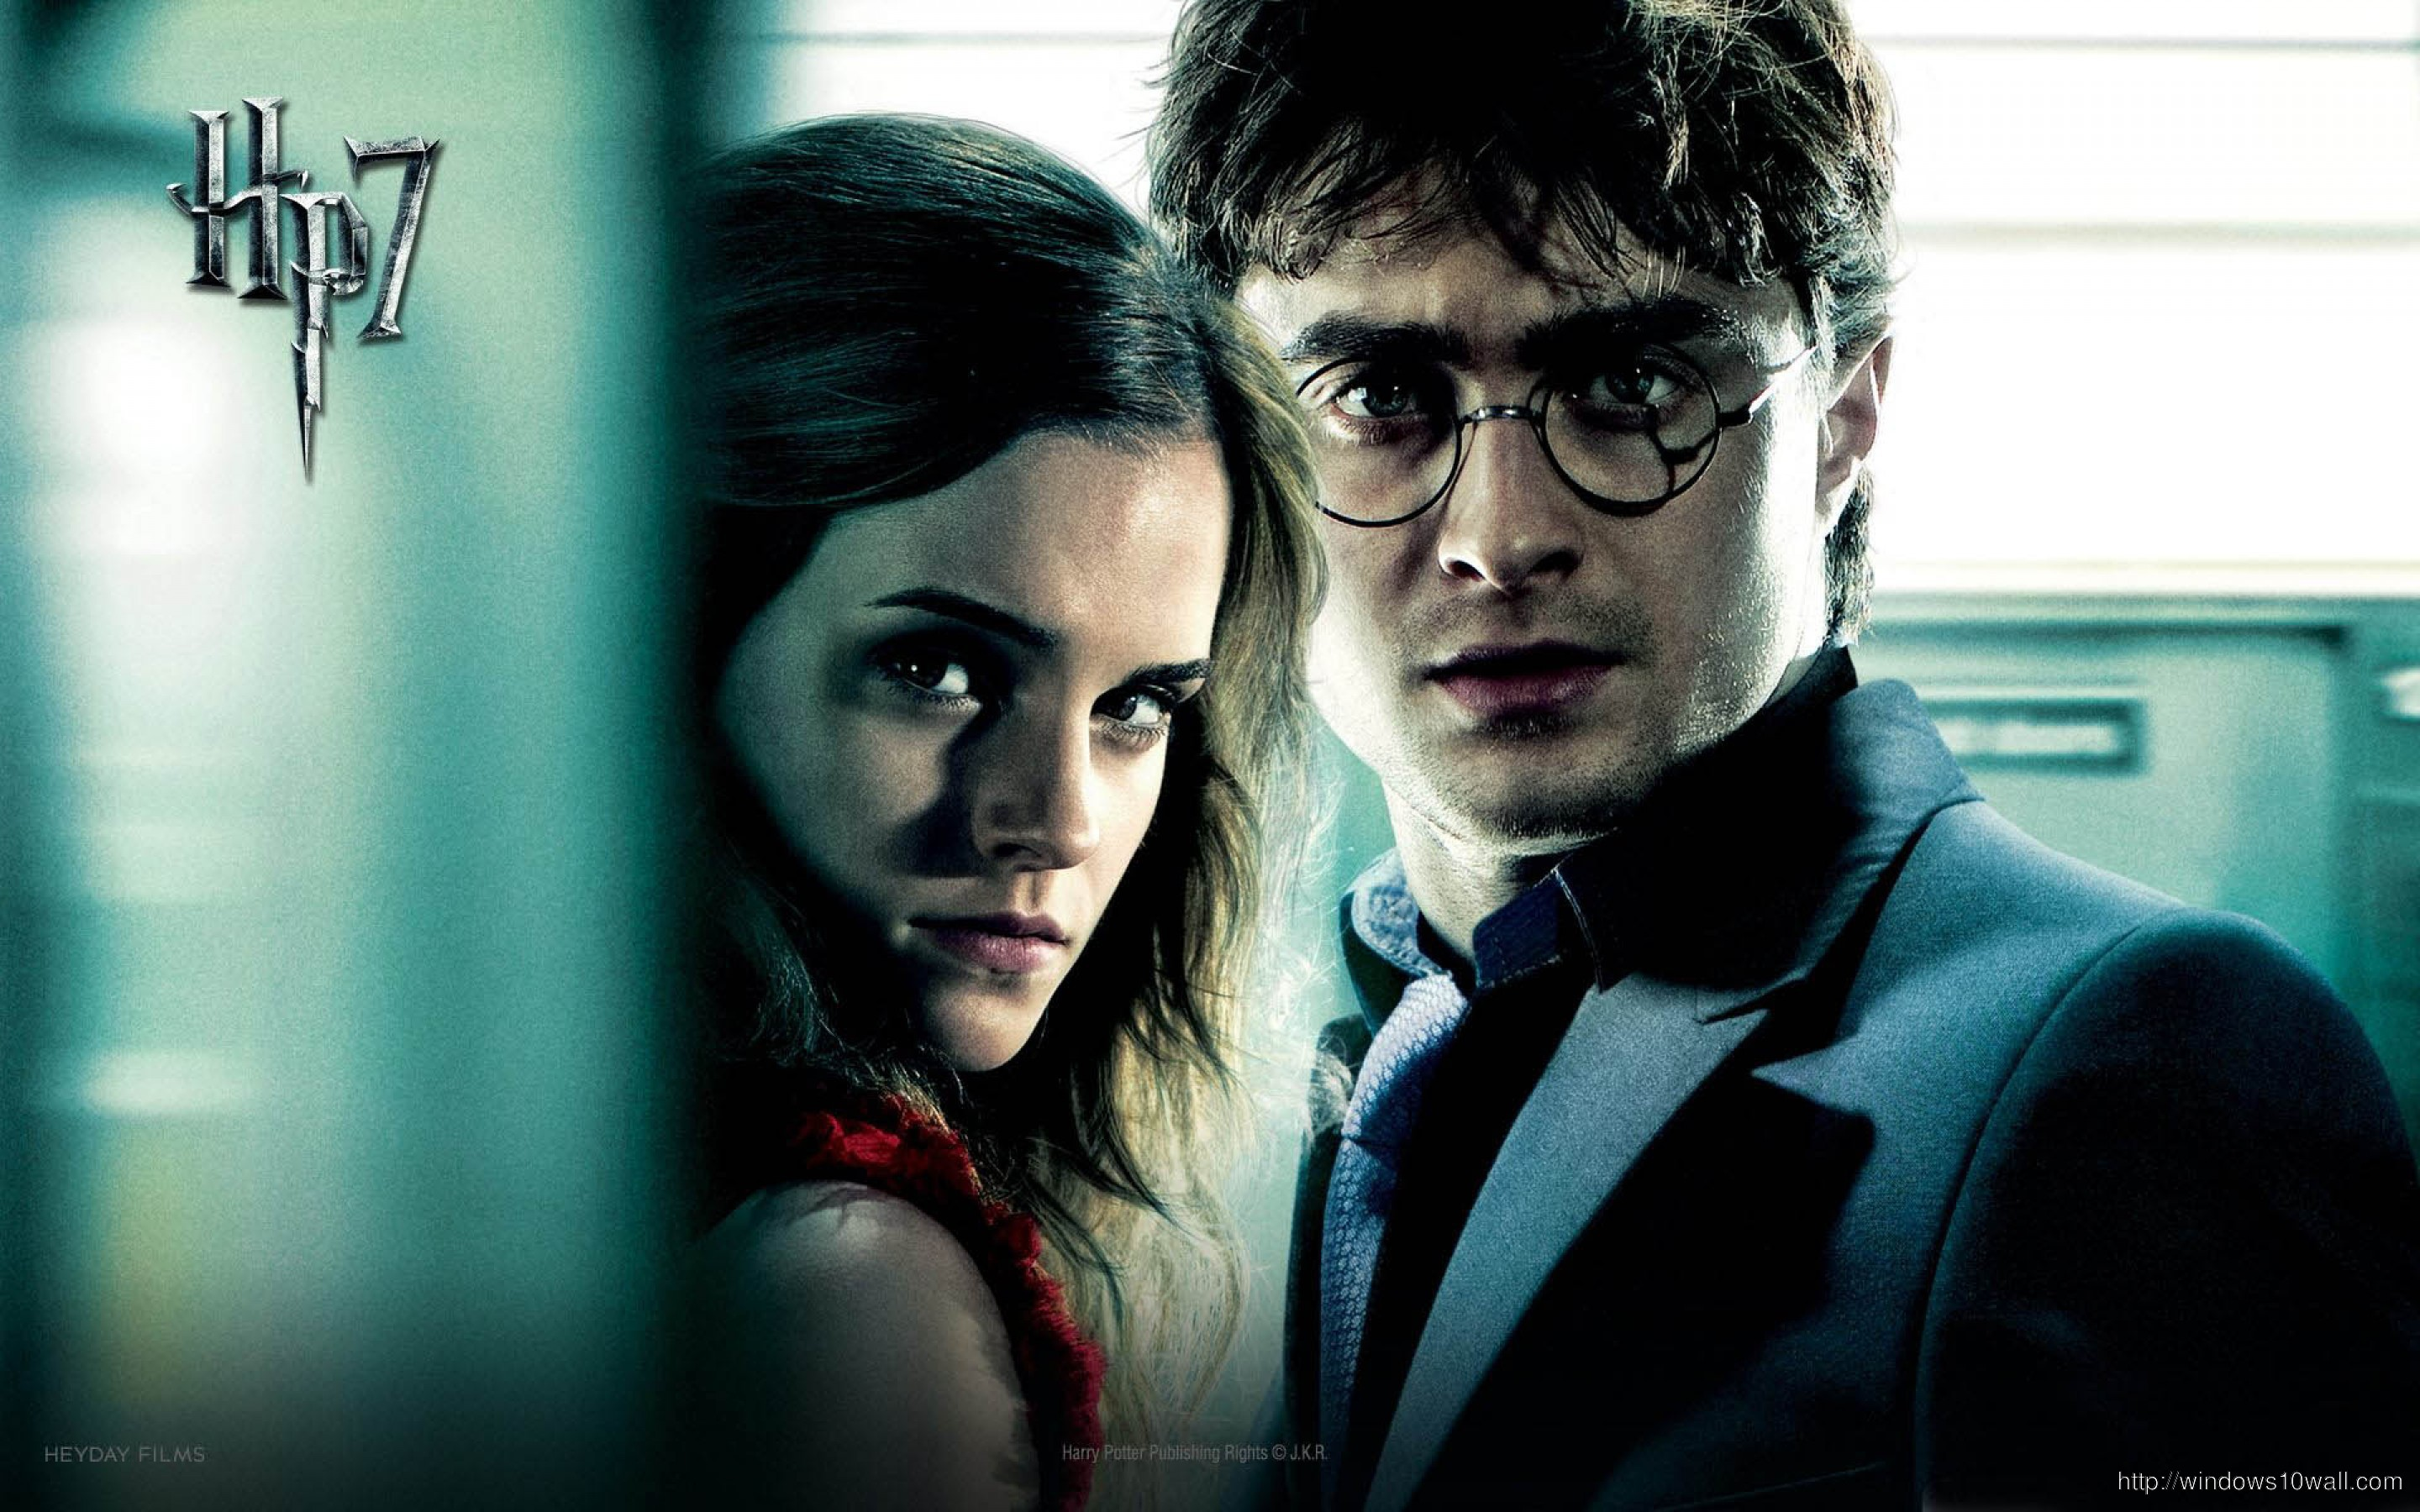 Harry potter wallpaper free download windows 10 wallpapers harry potter wallpaper free download voltagebd Image collections